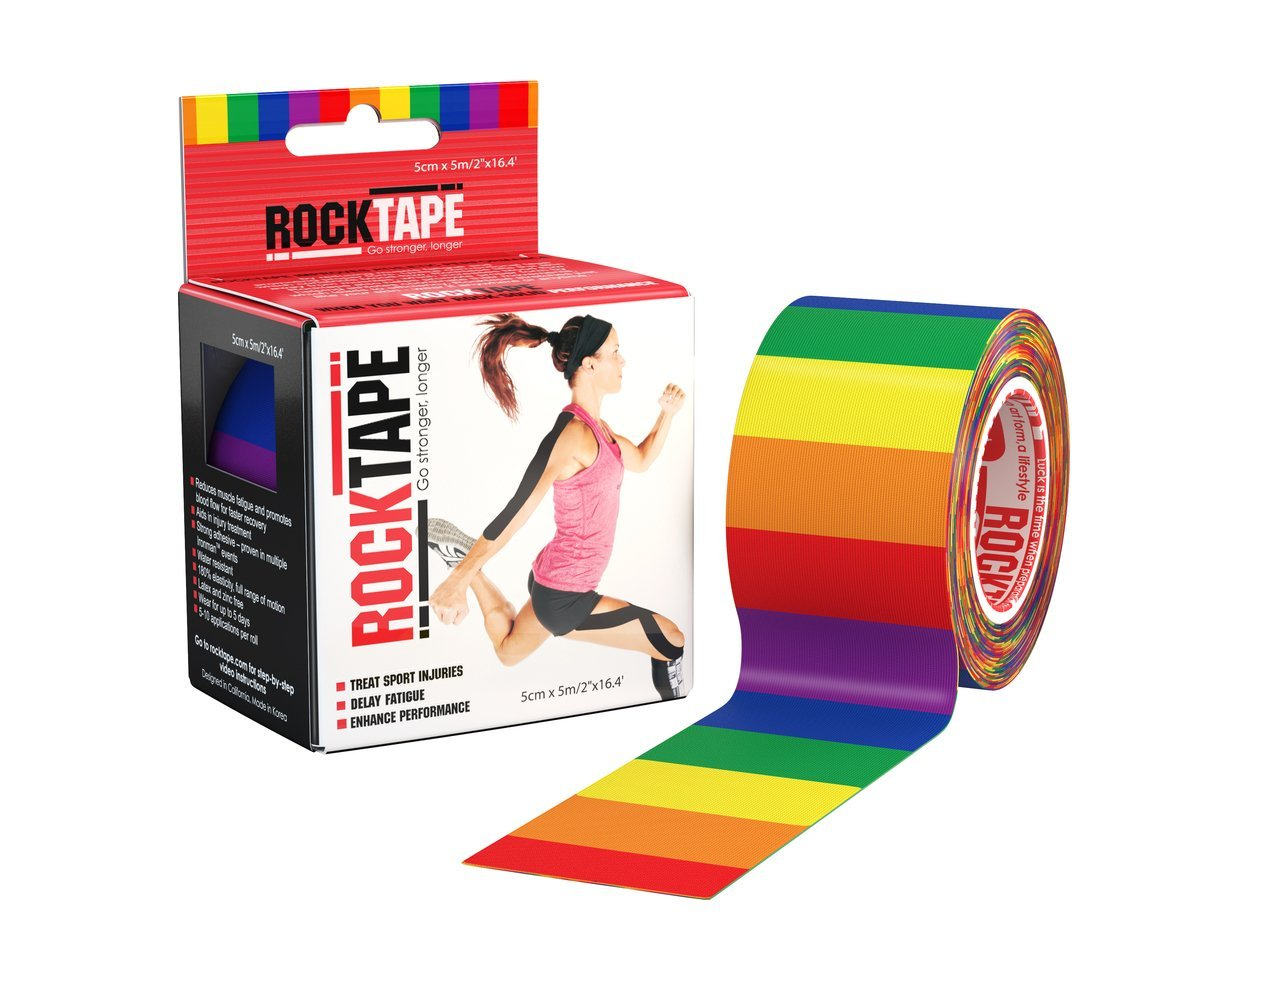 Rocktape - Tape for Athletes, Water Resistant, Reduce Pain and Injury  Recovery